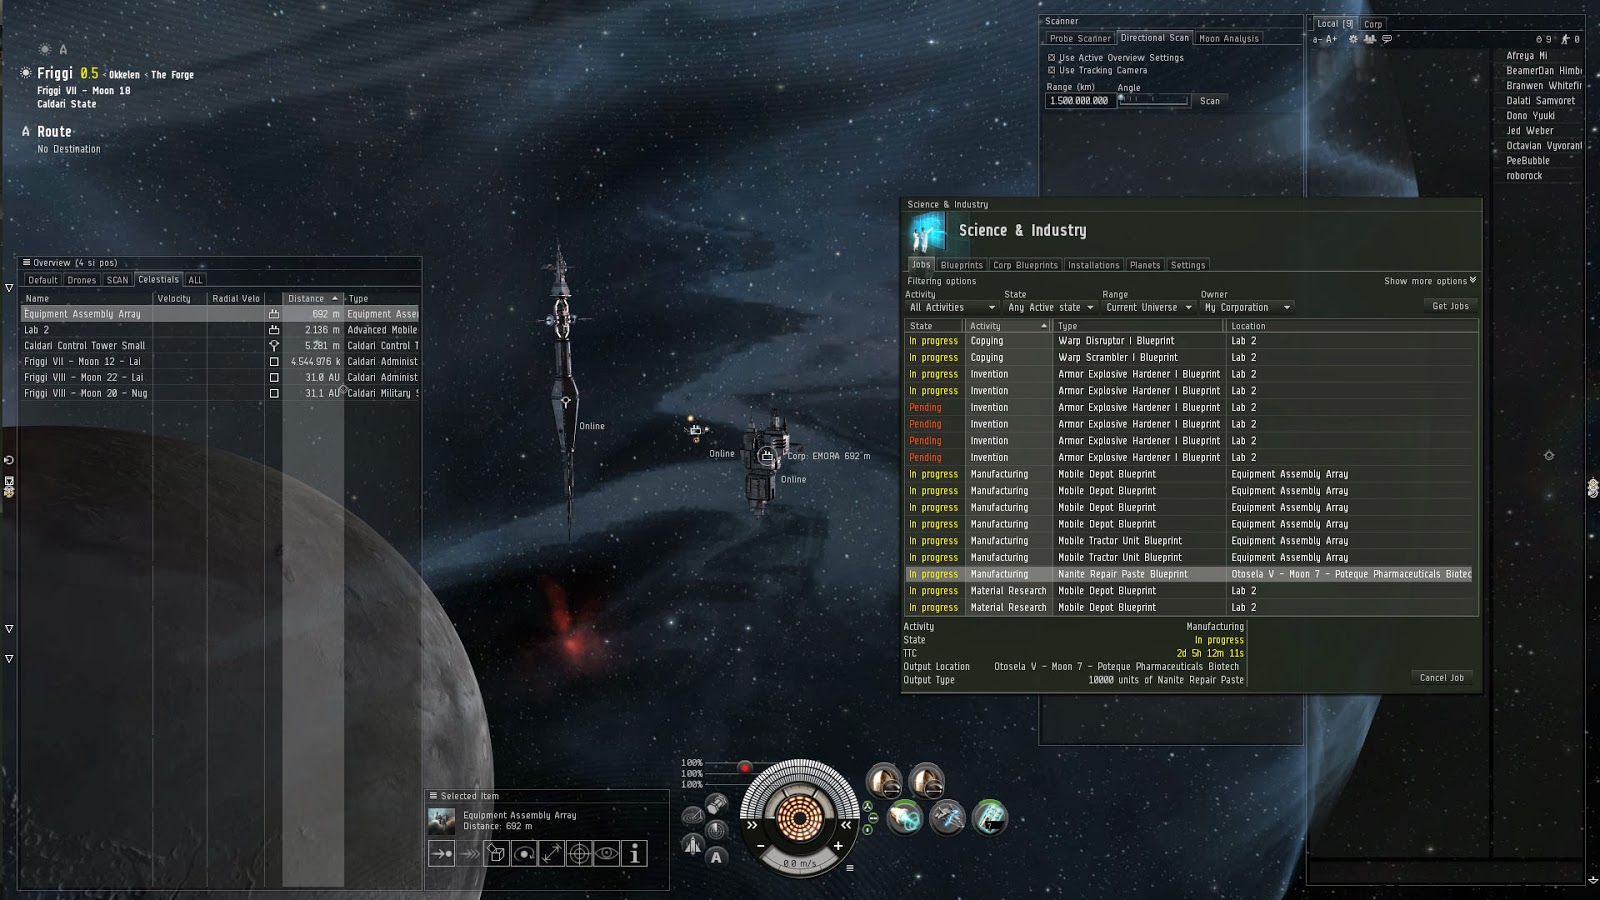 Eve online production slots slots and poker mining in eve online nullsec ratting updates capital production empty high slot empty high slot empty high slot malvernweather Image collections